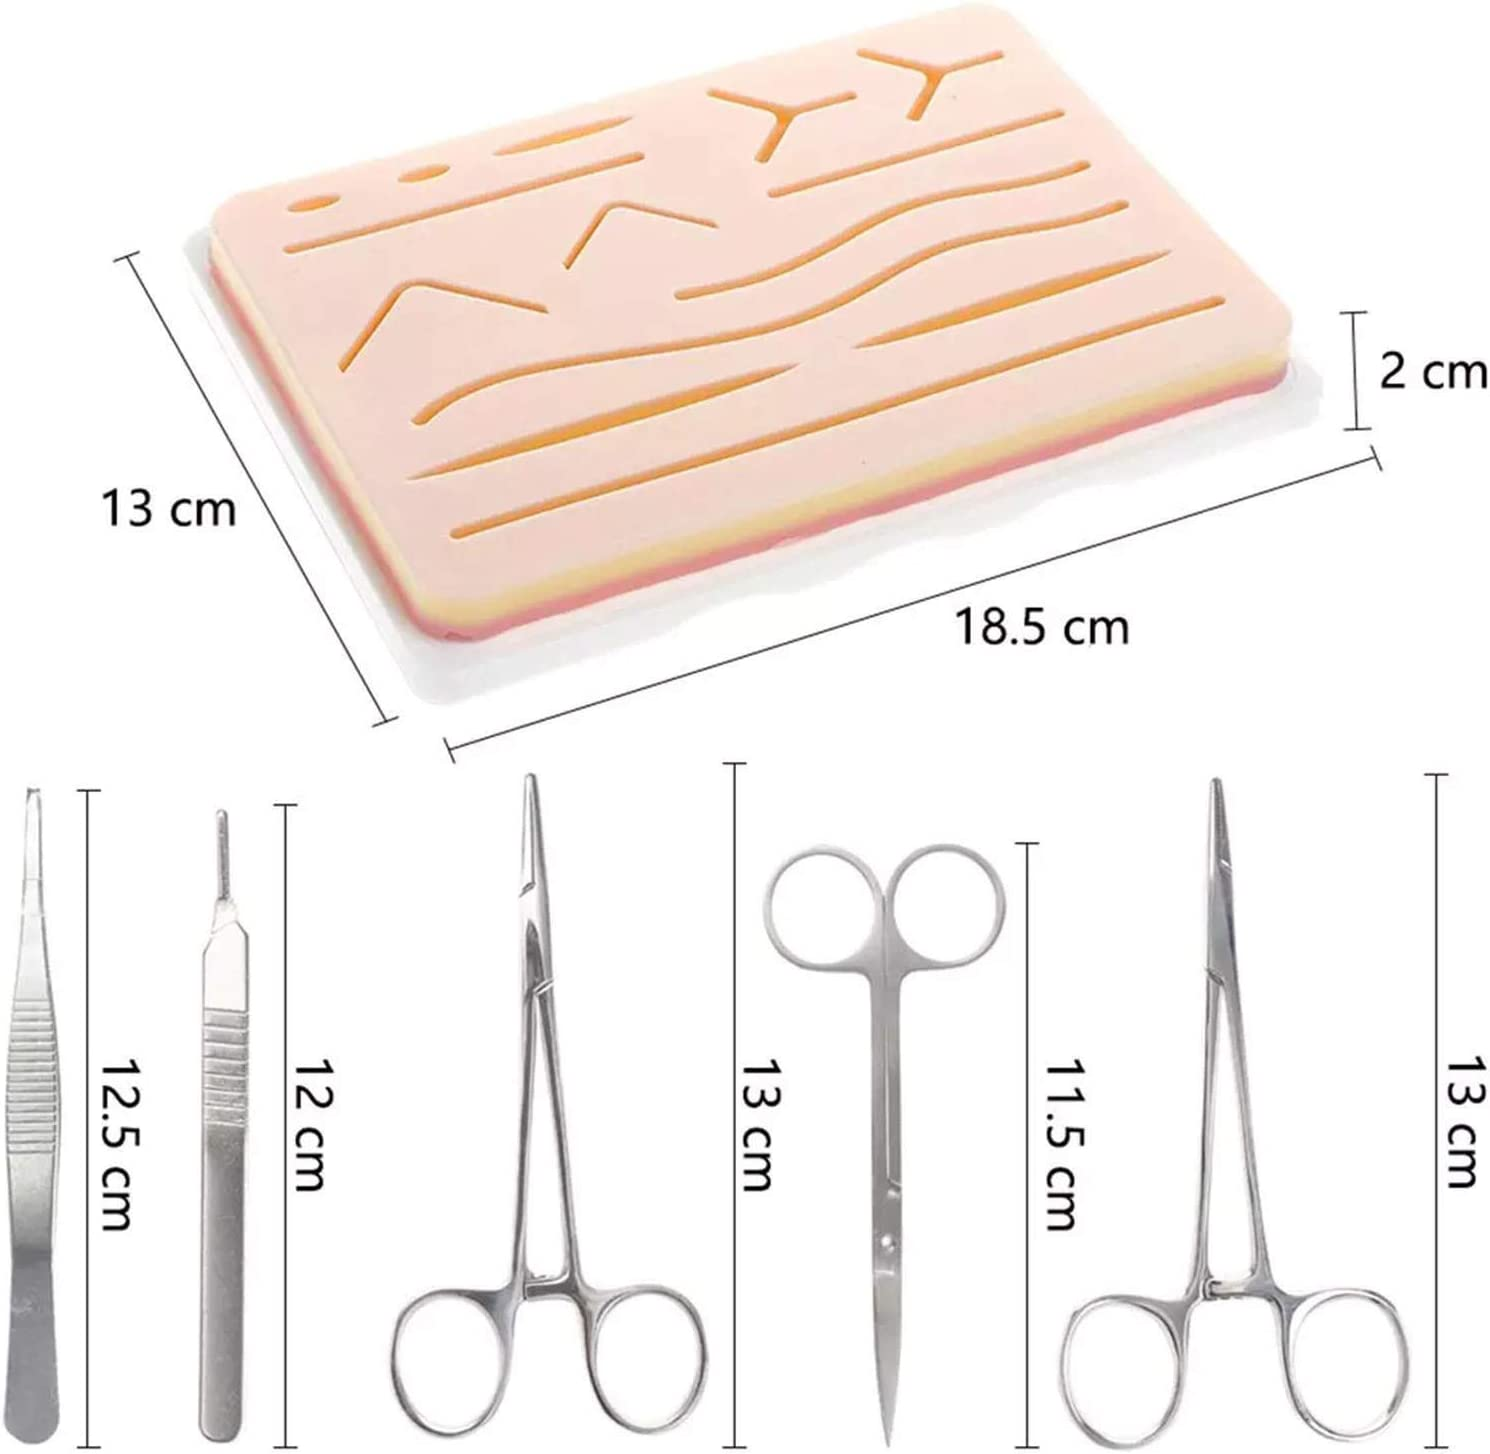 Perfect for Practice 21-Pieces Complete Kit Include Durable Tools Kit and Threads Demonstration AOXING Practice Kit for Students